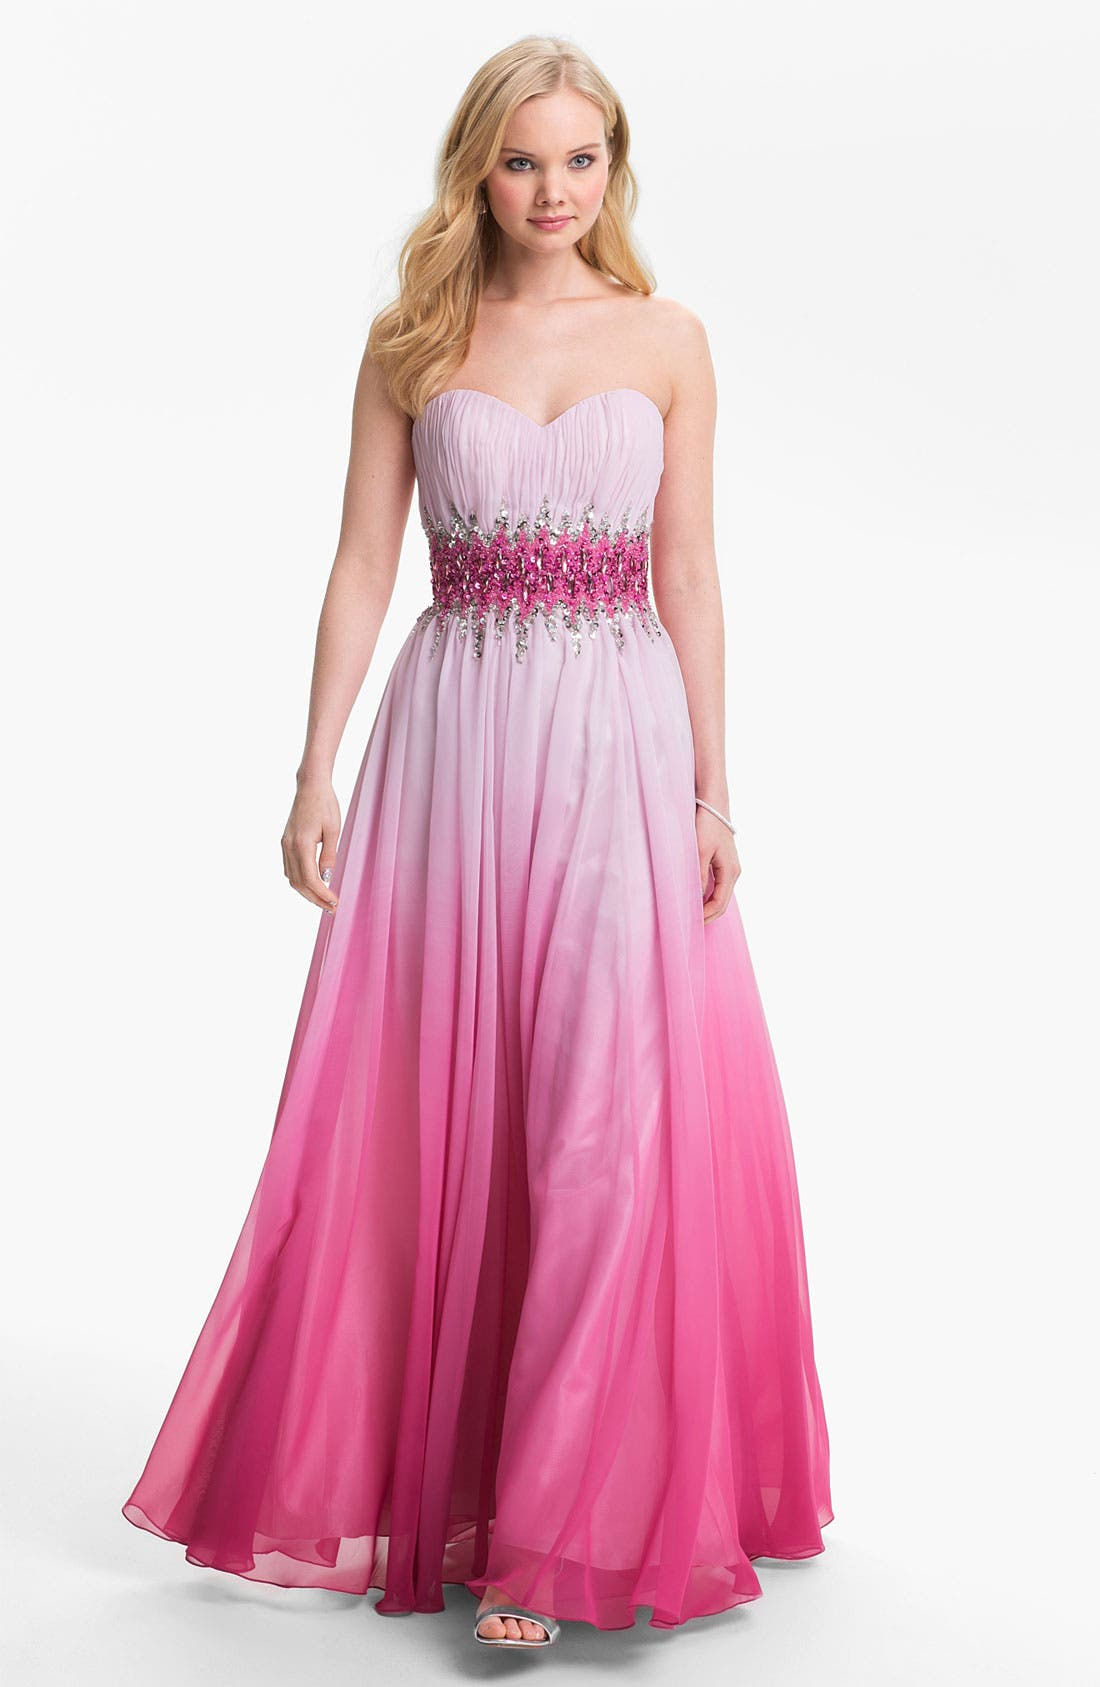 Alternate Image 1 Selected - Sean Collection Ball Gown & Accessories